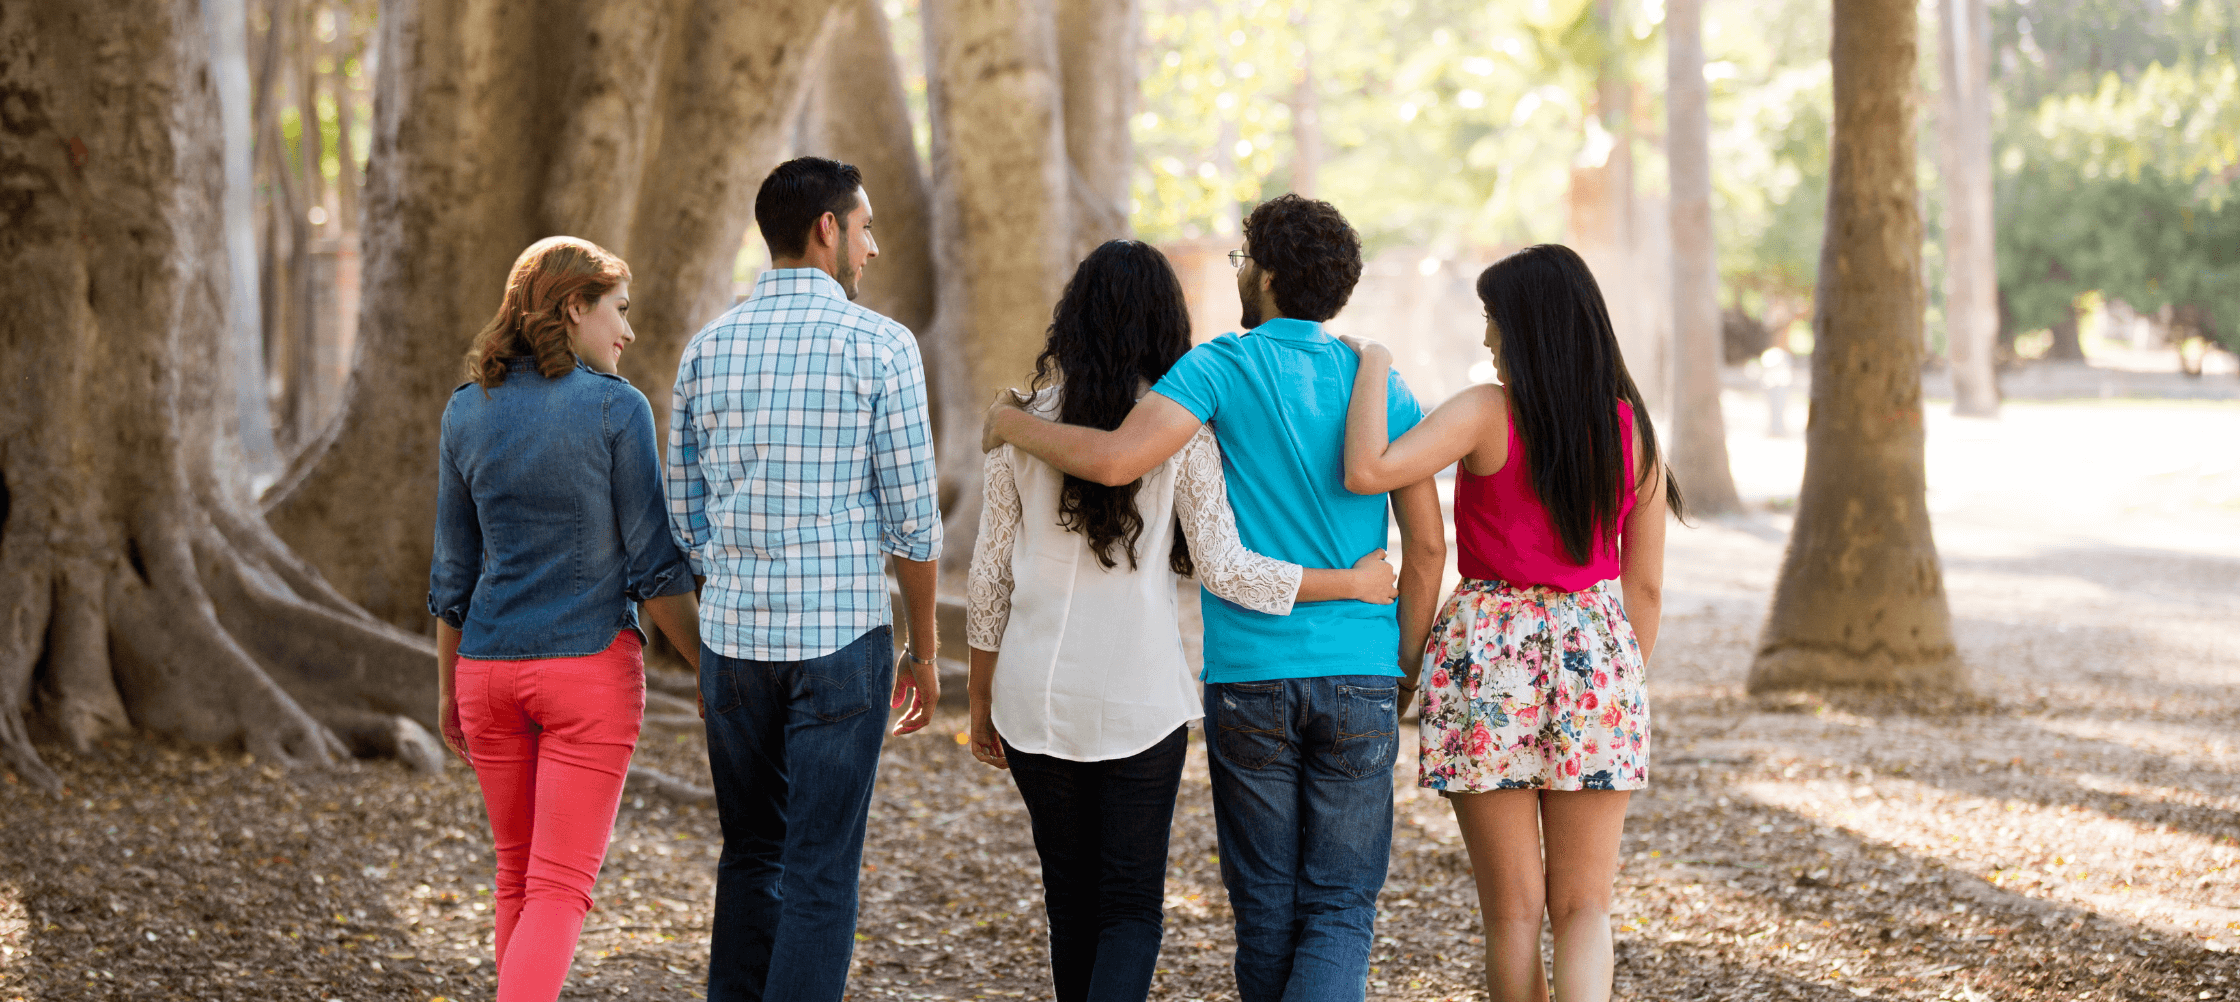 people walking-how to build healthy relationships